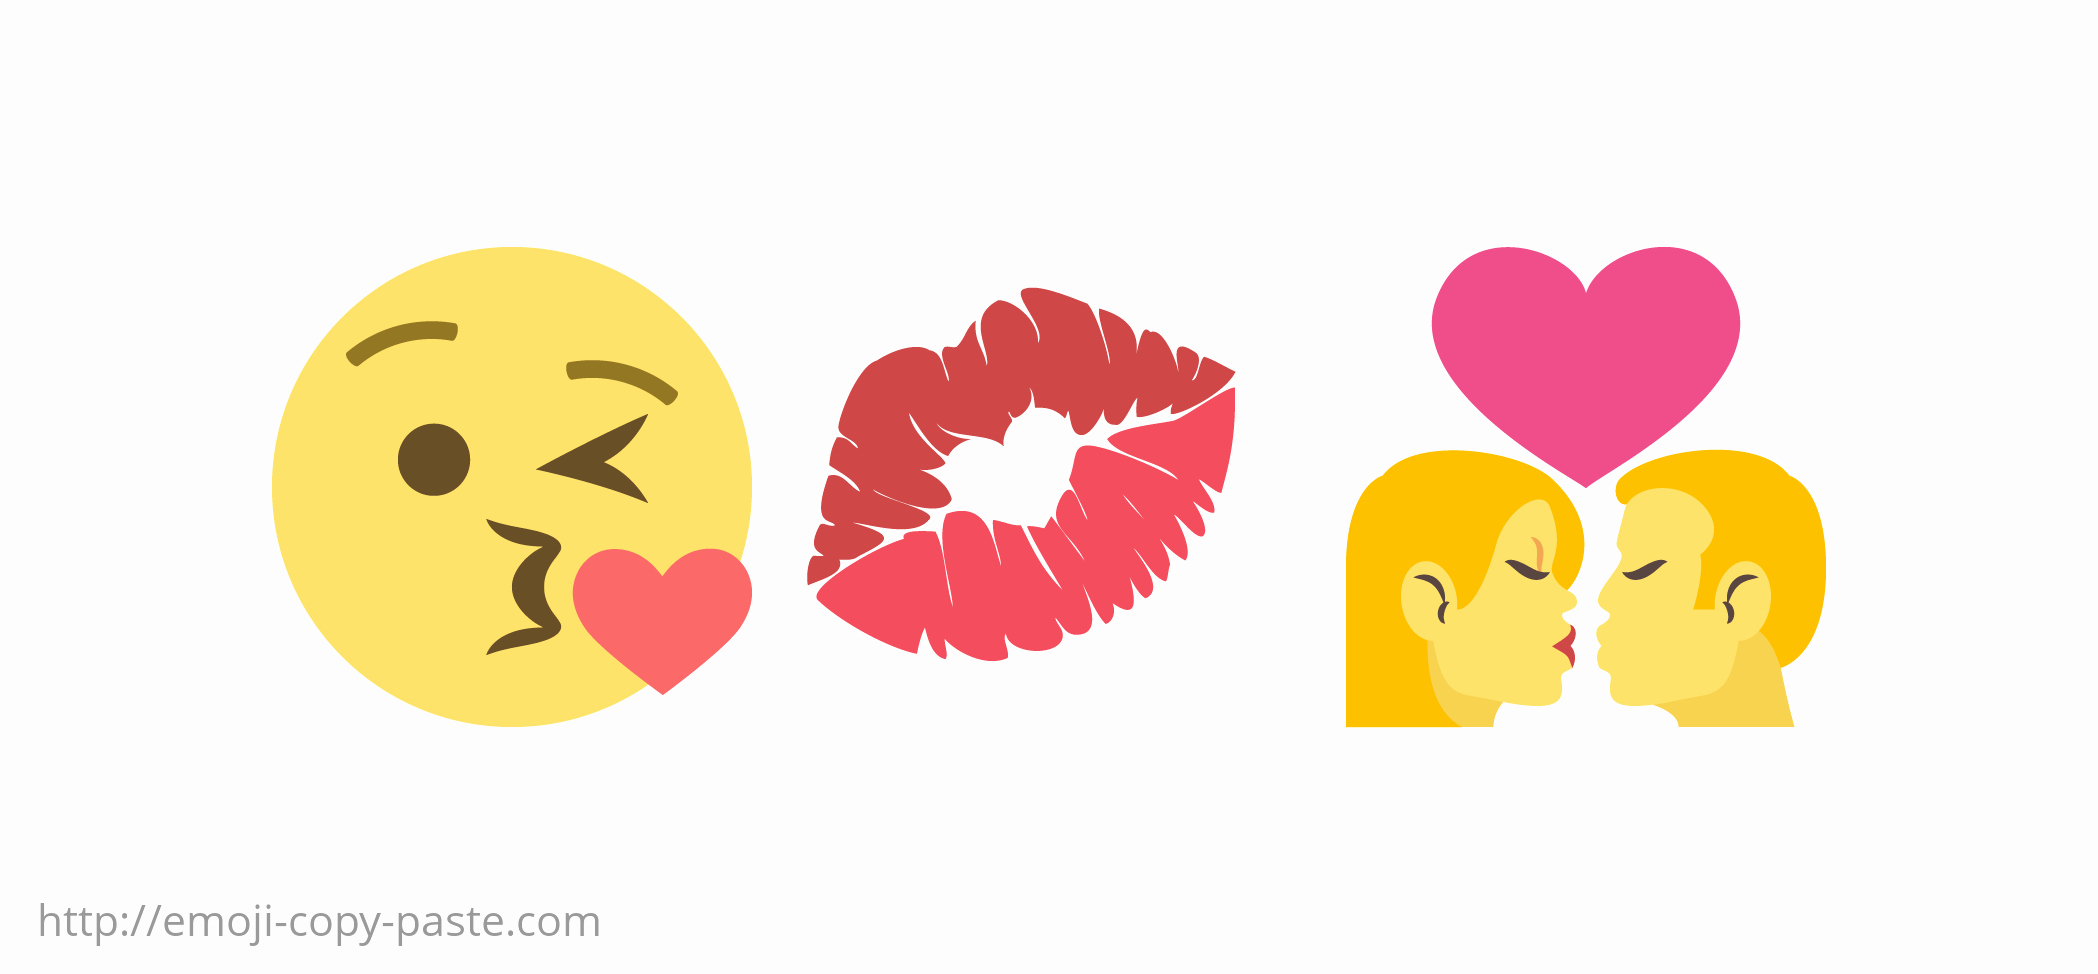 Copy and Paste Emoji Pictures Lovely Copy Paste Kiss Emojis